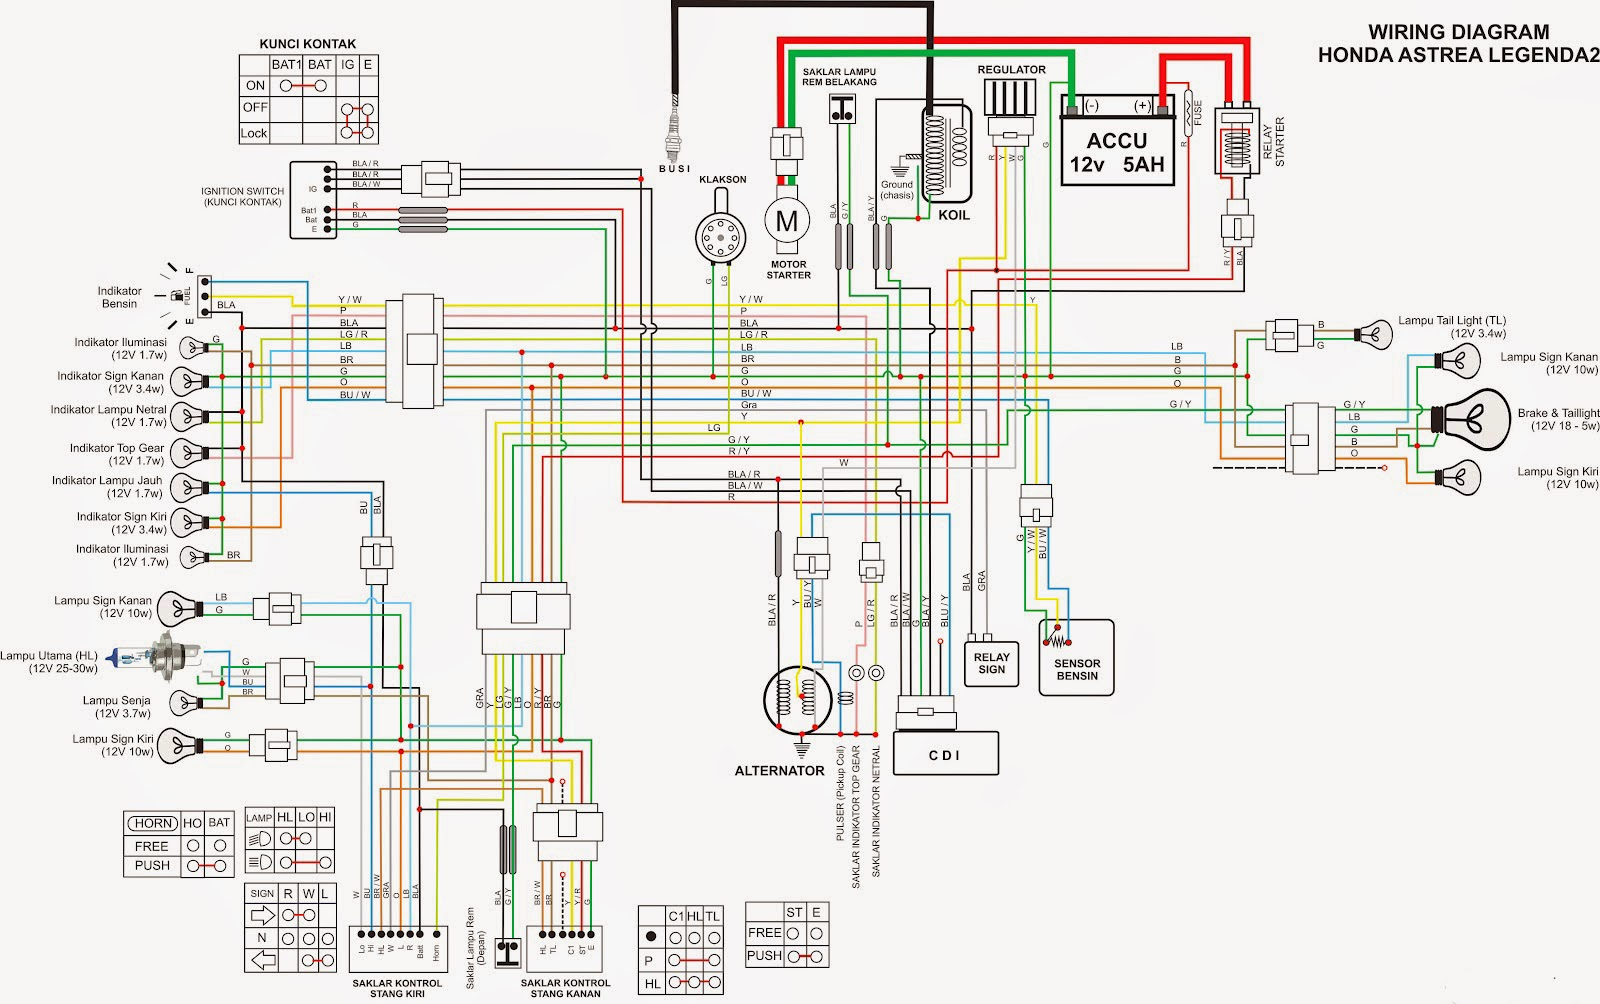 medium resolution of jupier z1 wiring diagram wiring diagram yer jupier z1 wiring diagram source wiring diagram jupiter z